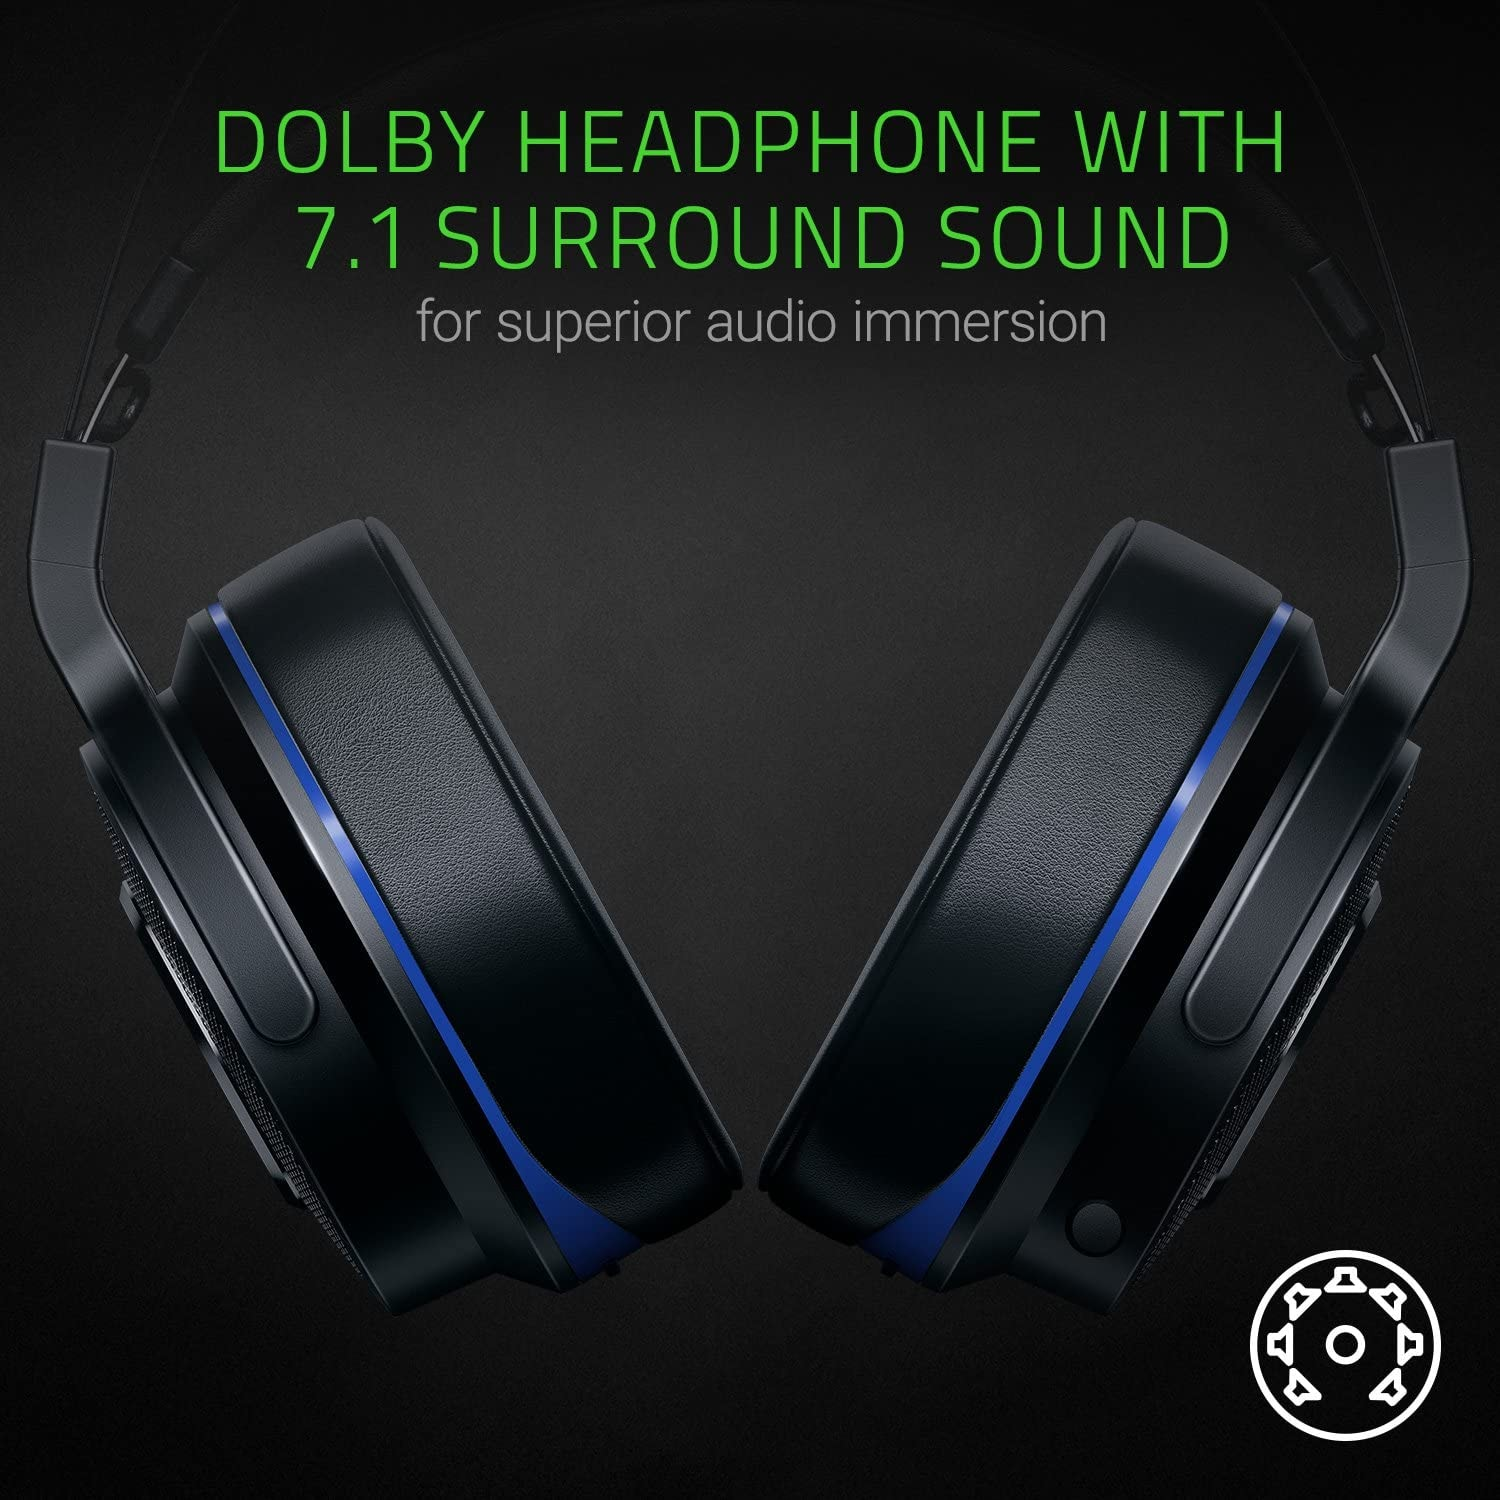 Razer Thresher 7.1 for PlayStation - Wireless Gaming Headset for PS4, PS5 and PC Wireless Headphones, Dolby 7.1 Black - 5